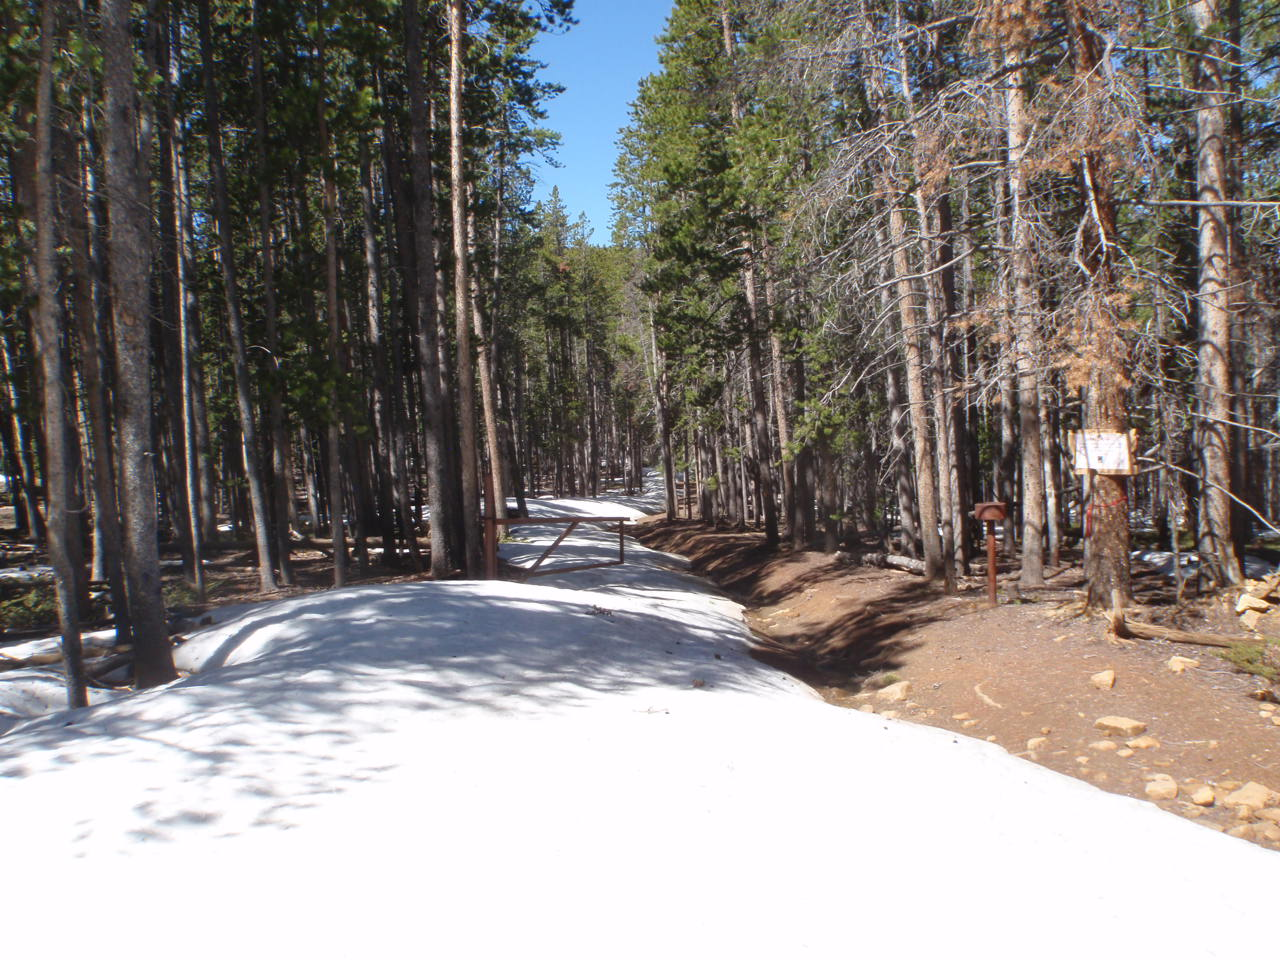 BLM Winter Restrictions: Red Canyon, Green Mtn., Lander Front, East Fork